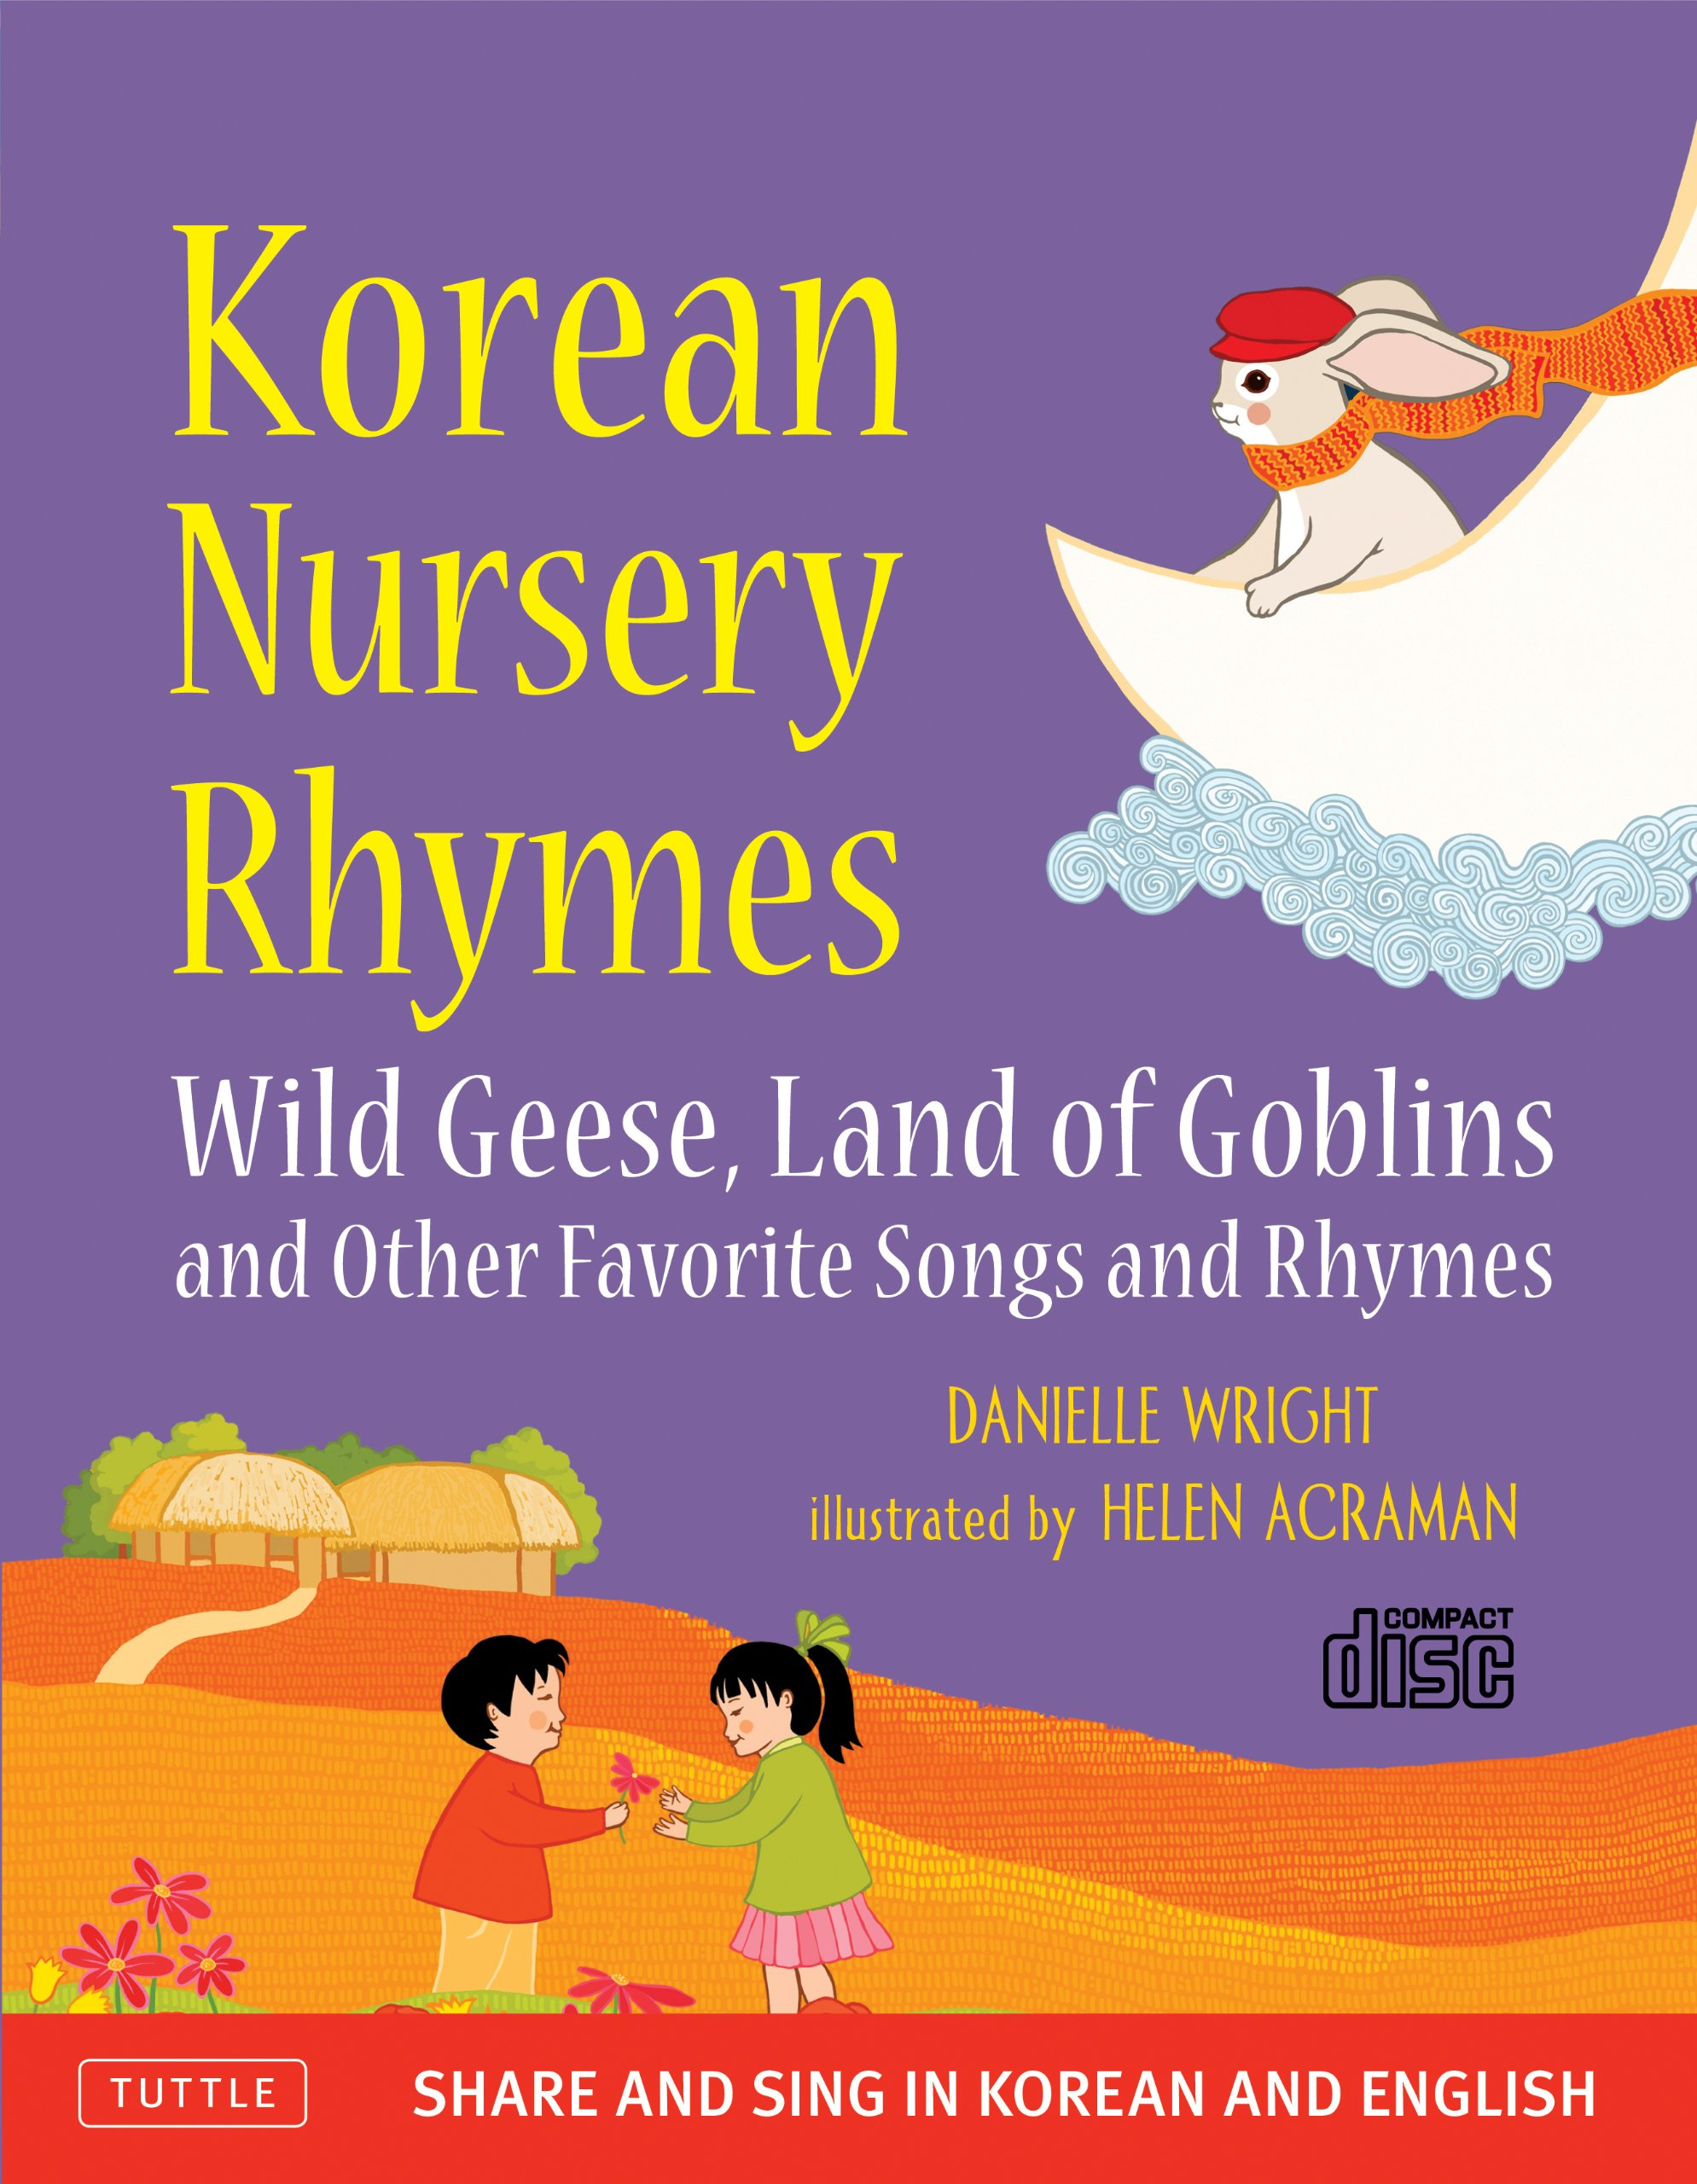 Korean Nursery Rhymes: Wild Geese, Land of Goblins and other Favorite Songs and Rhymes [Korean-English] [MP3 Audio CD Included] by Tuttle Publishing